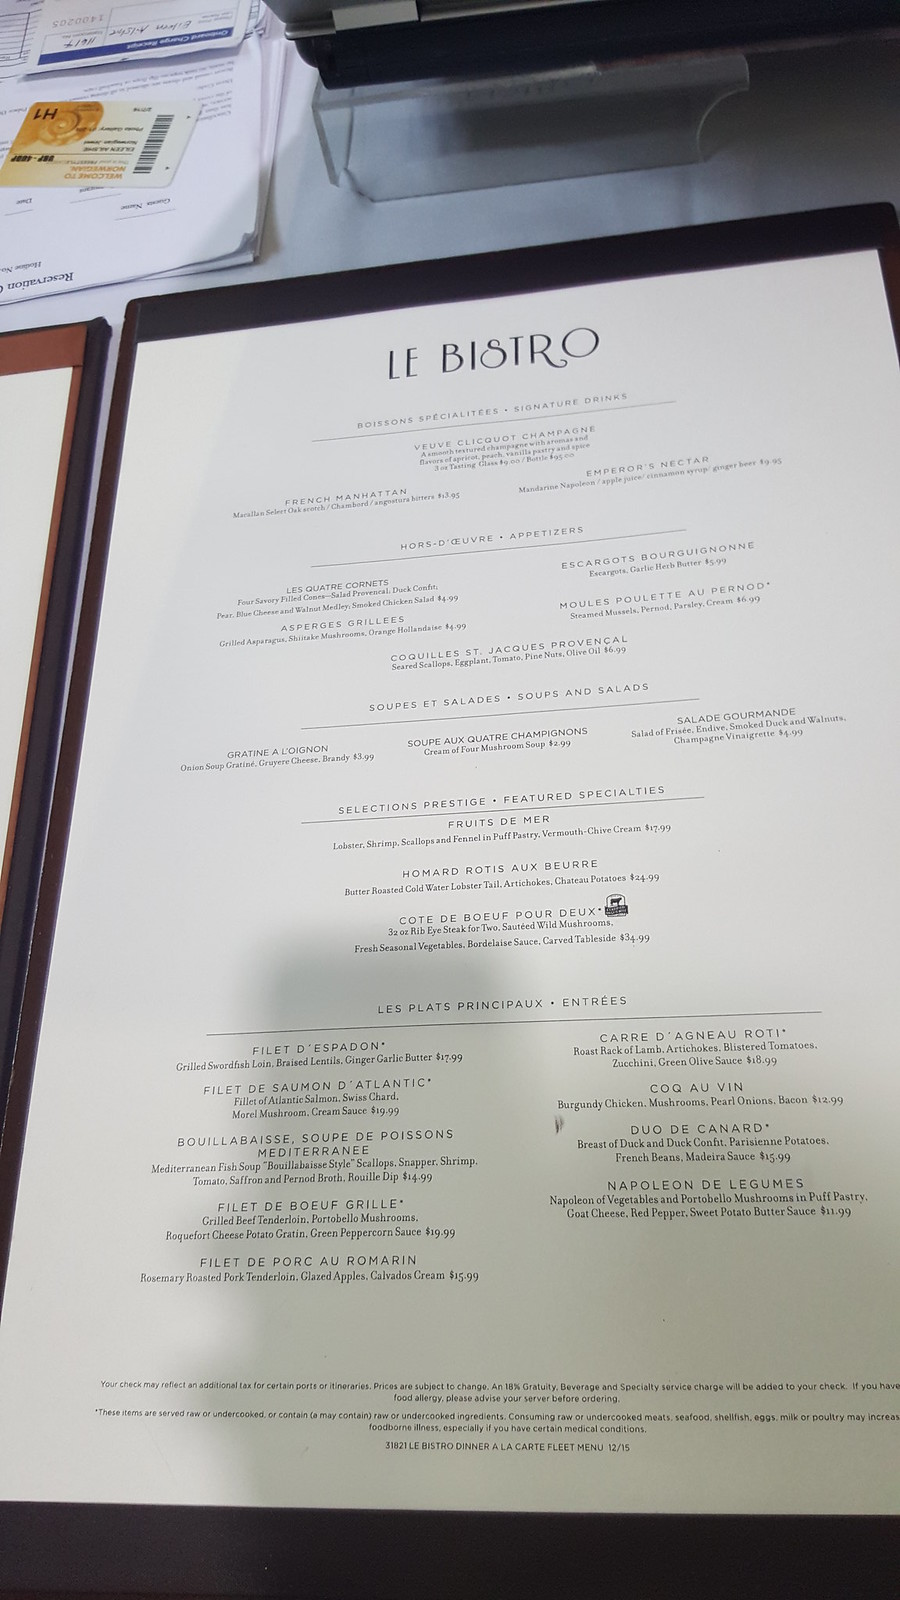 Norwegian Jewel La Cucina Menu Ncl Jewel Menus Norwegian Cruise Line Cruise Critic Community